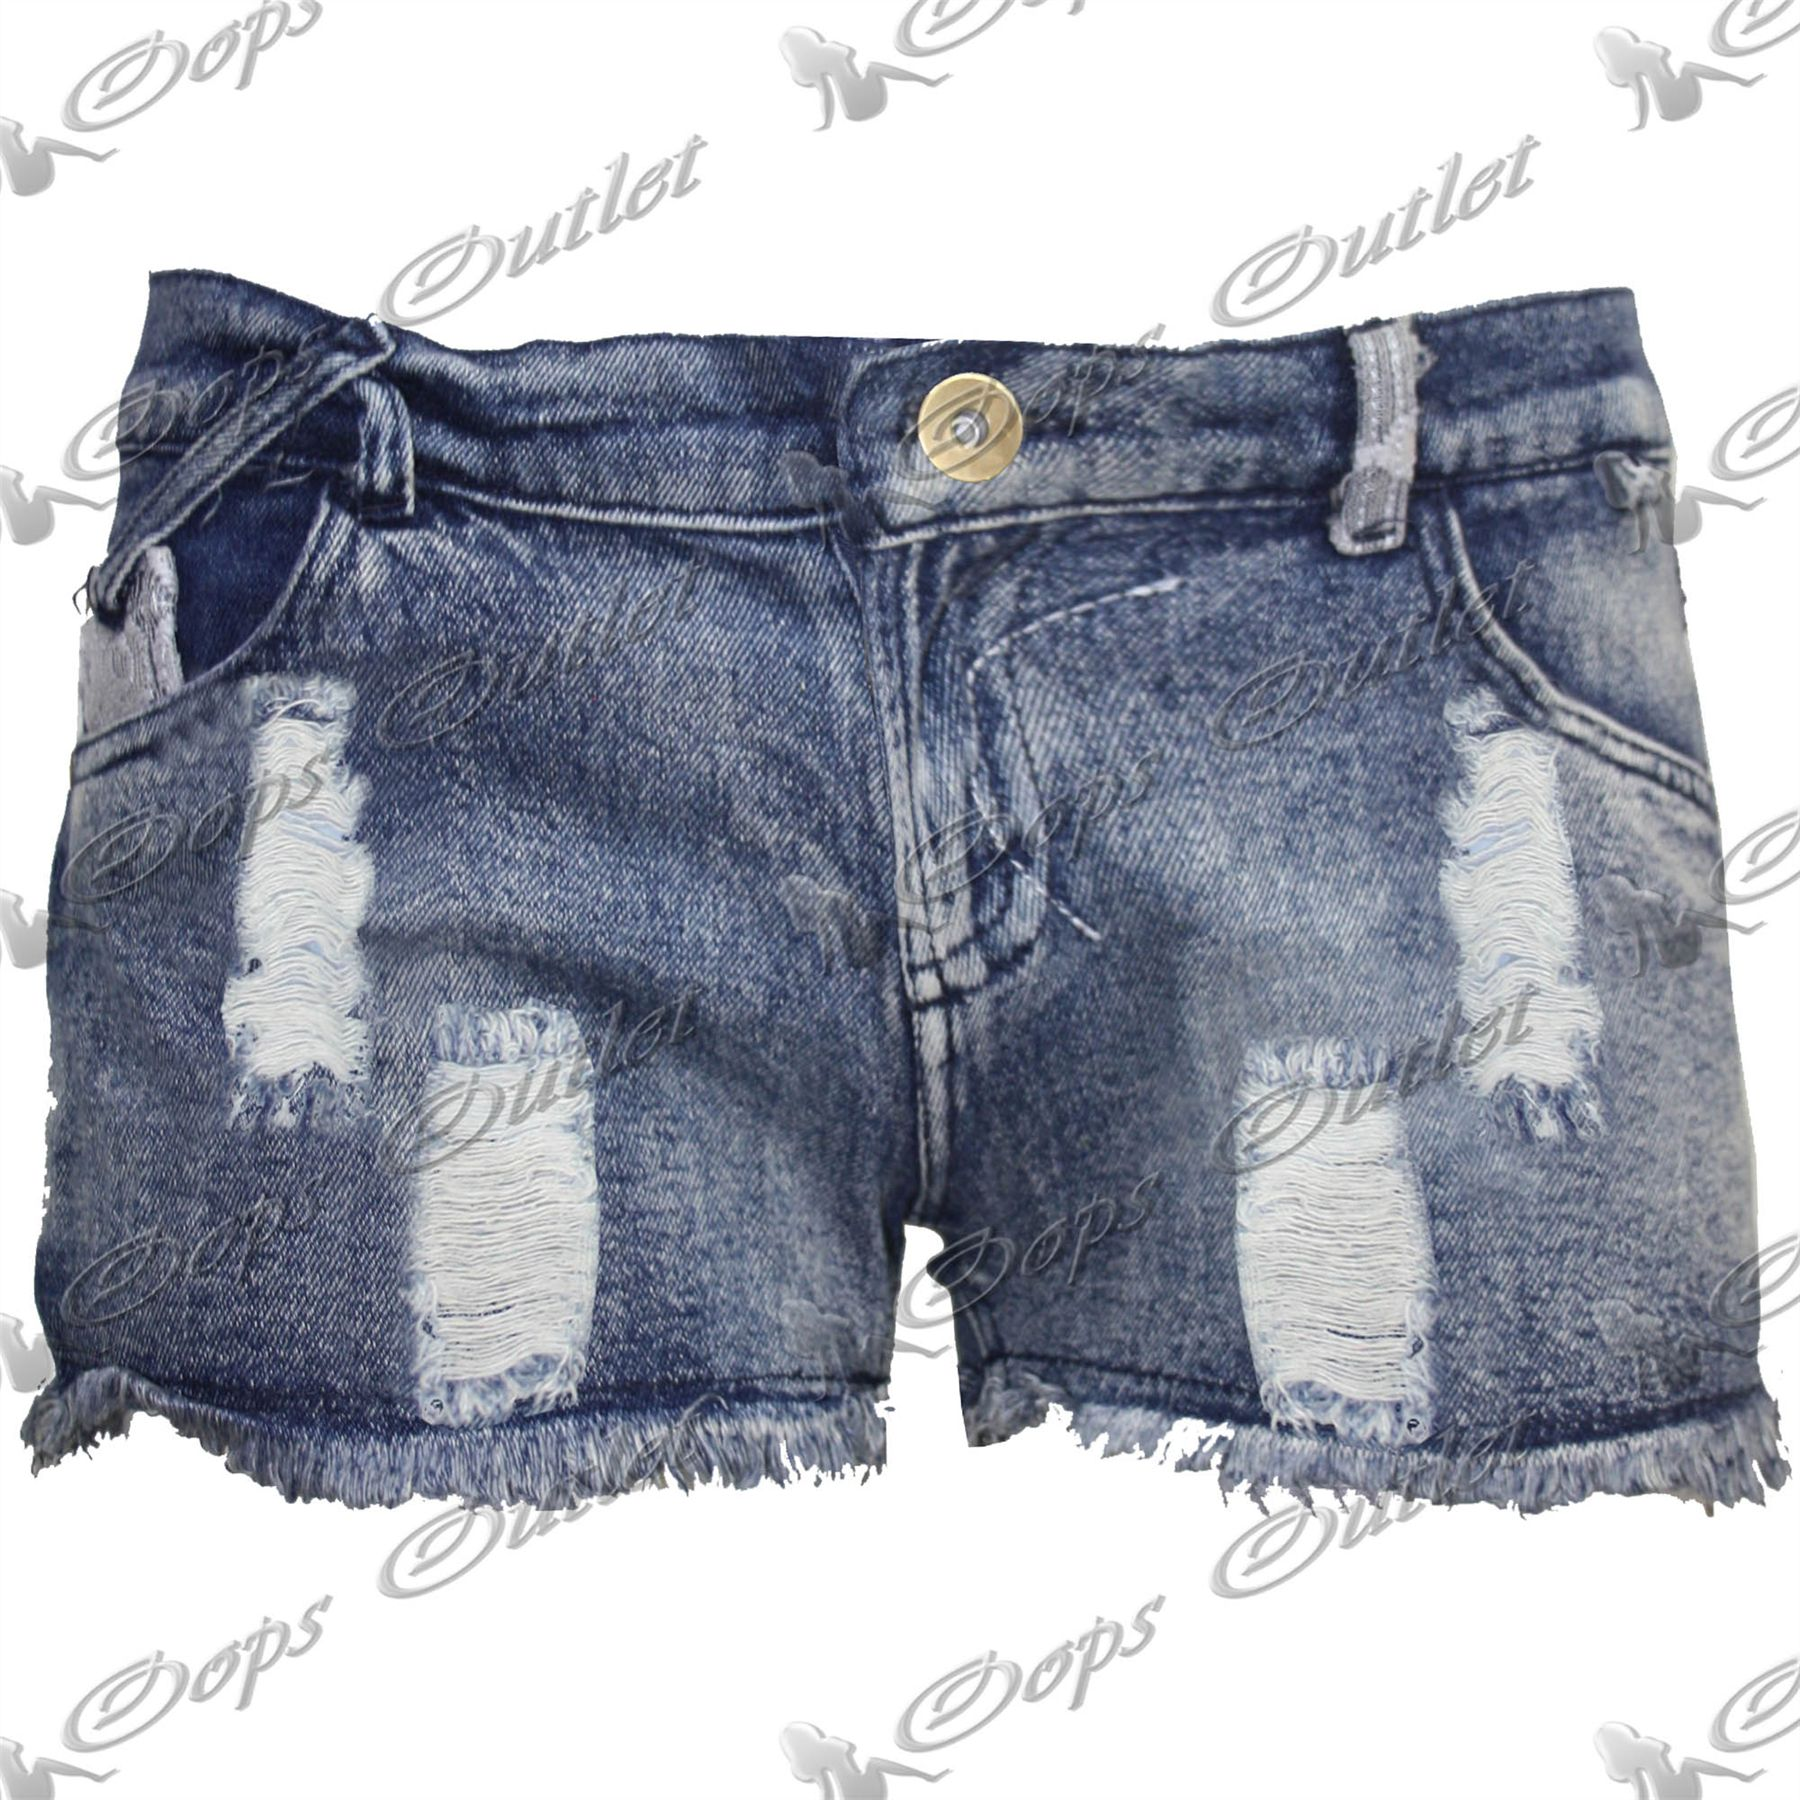 Womens-Ladies-Ripped-Raw-Edge-Torn-Distressed-Denim-Shorts-Frayed-Hot-Pants-Size